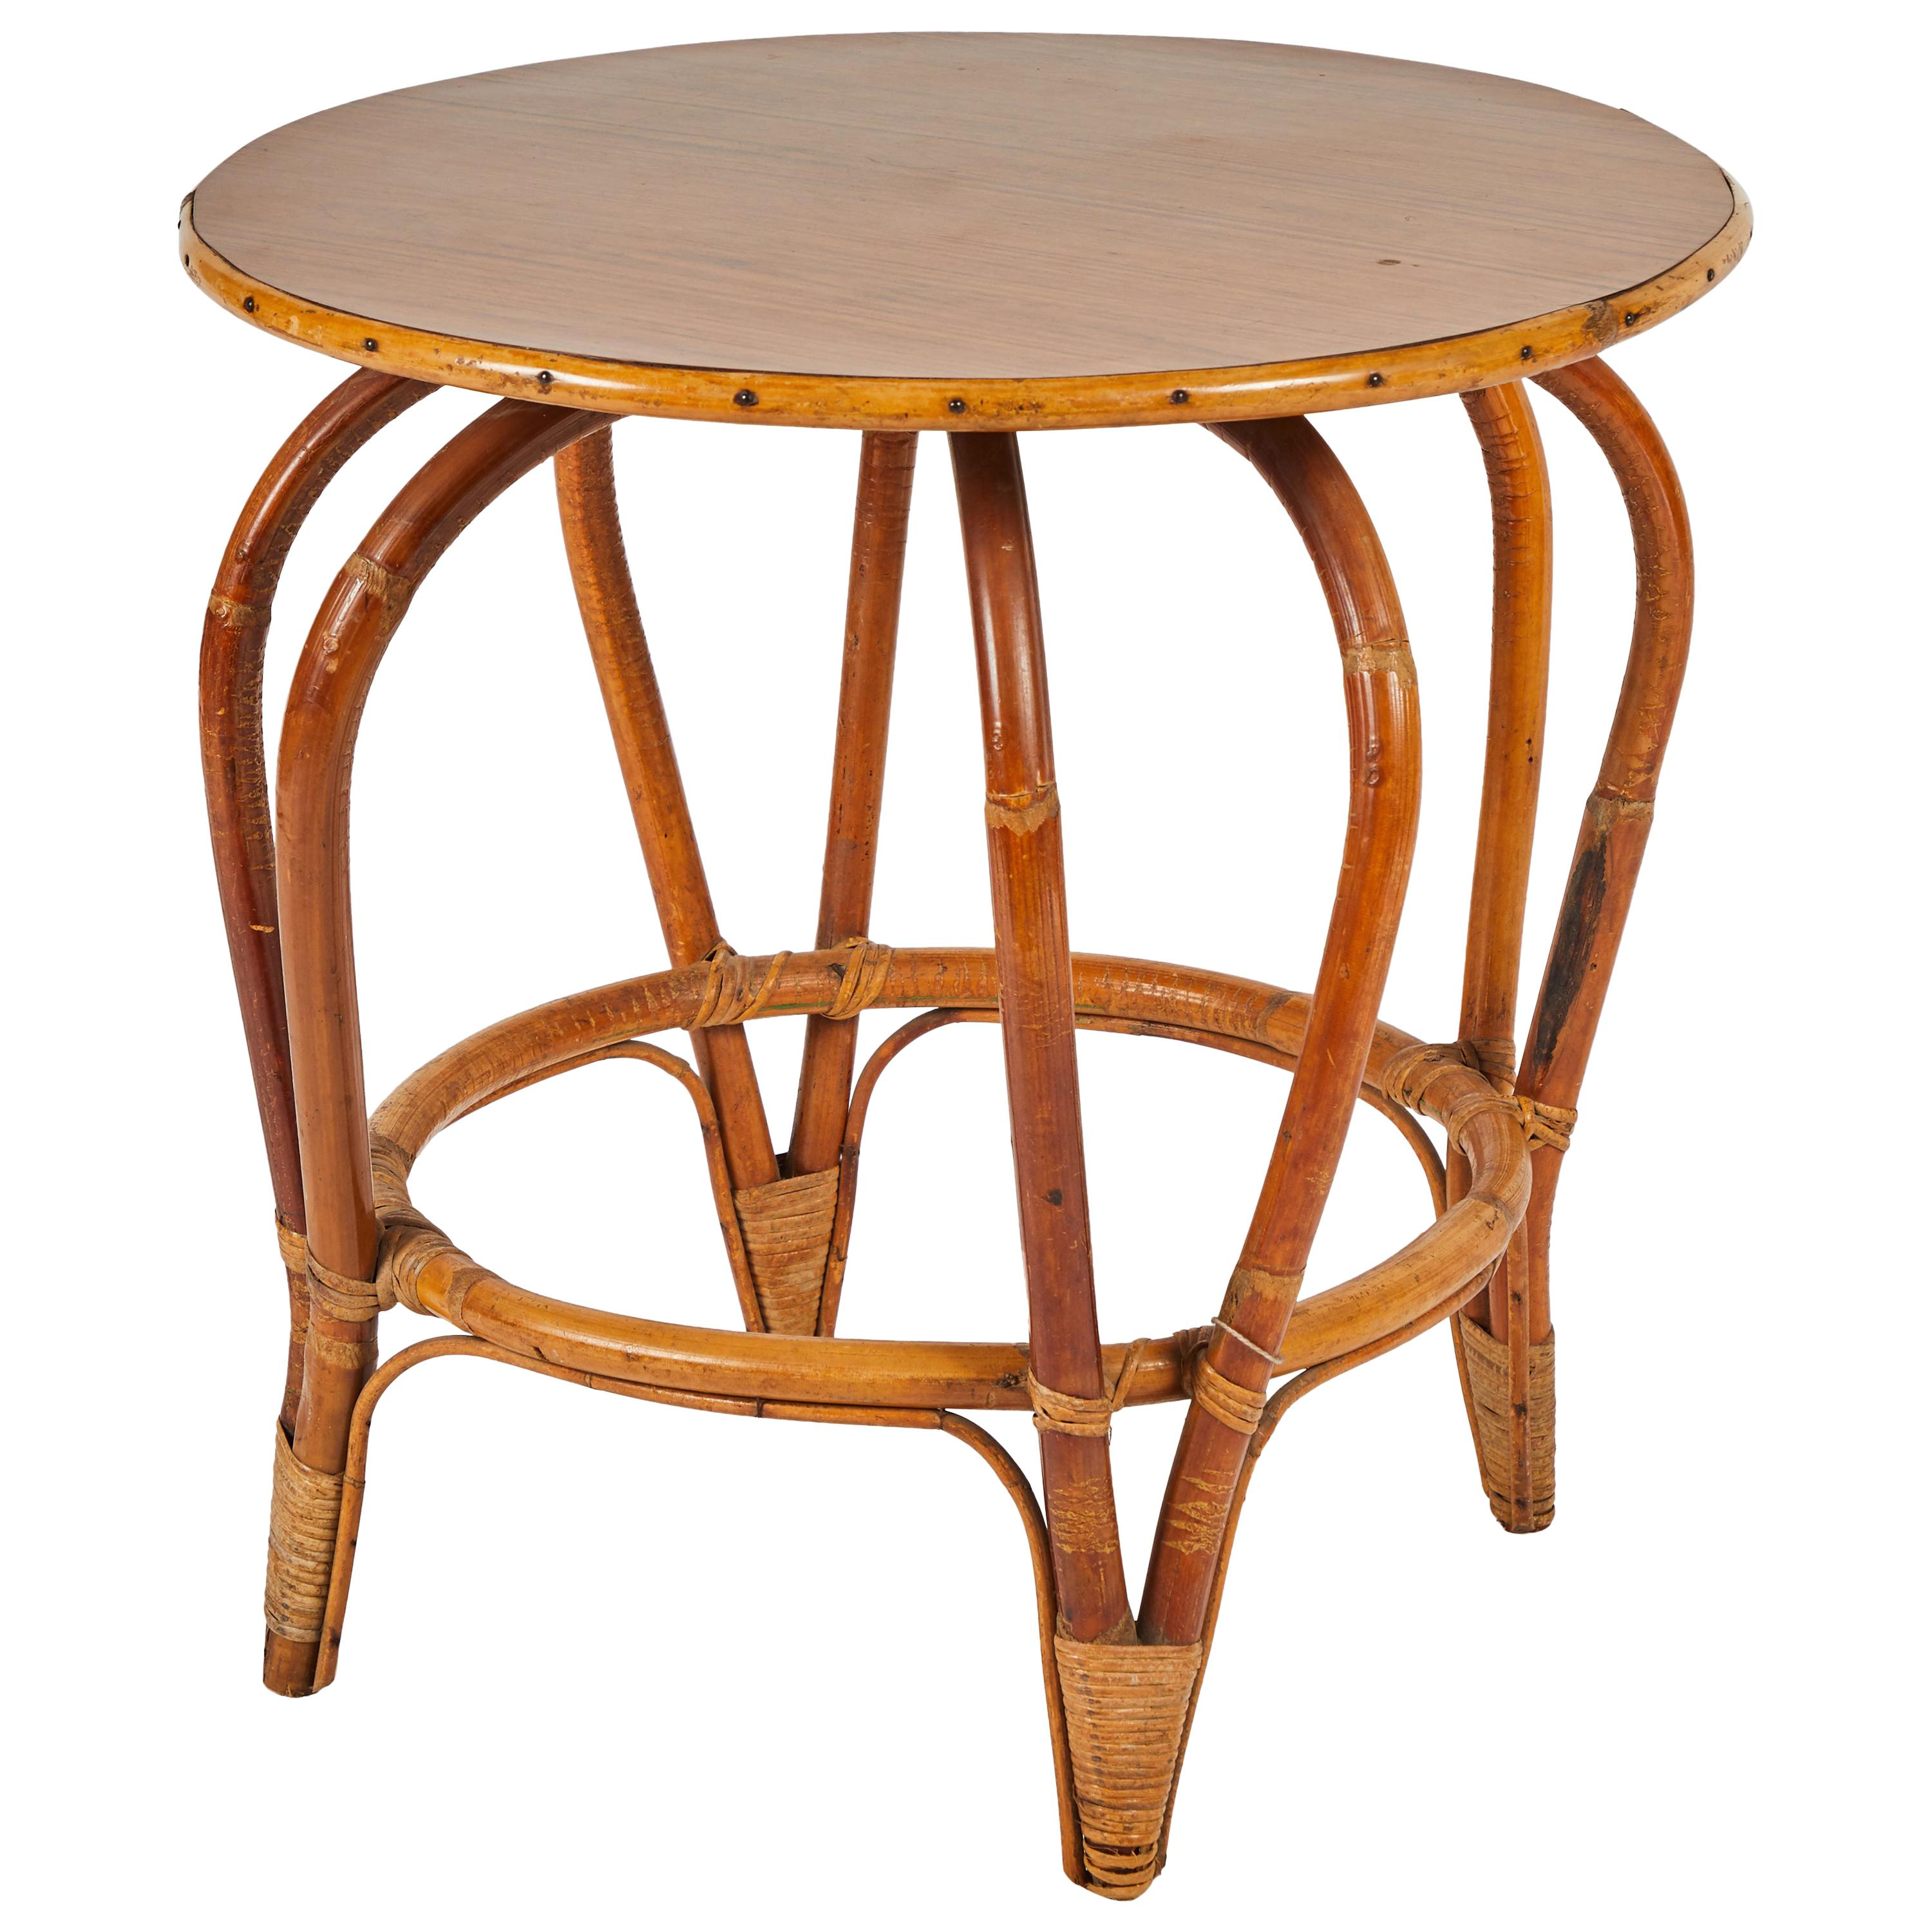 Gentil Round Rattan Side Or Coffee Table